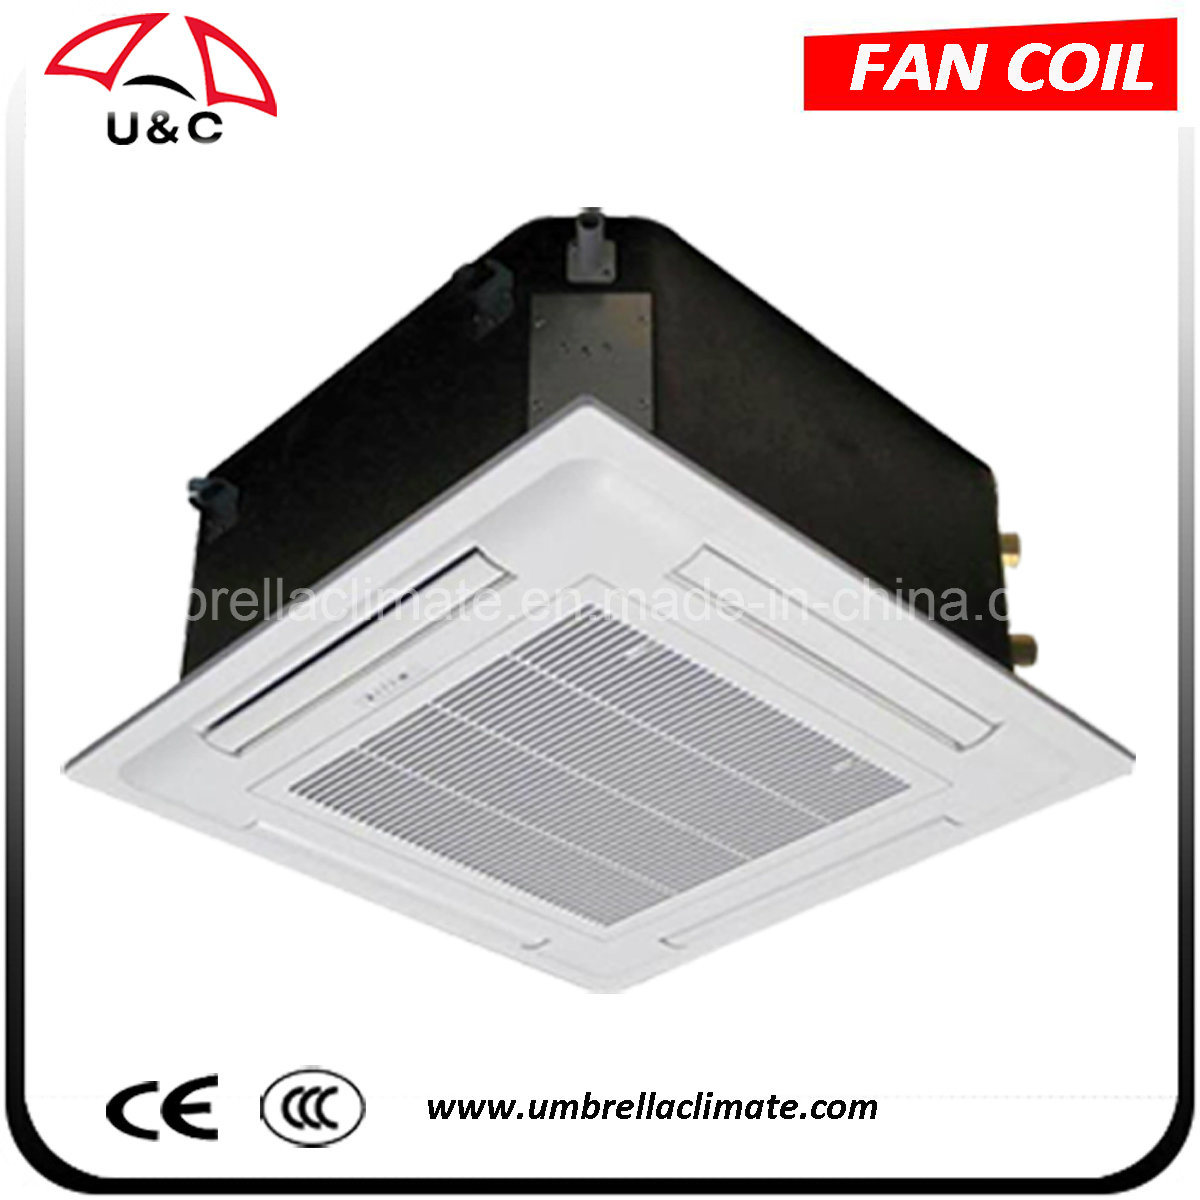 Chilled Water Ceiling Cassette Fan Coil Unit (CE Certified)